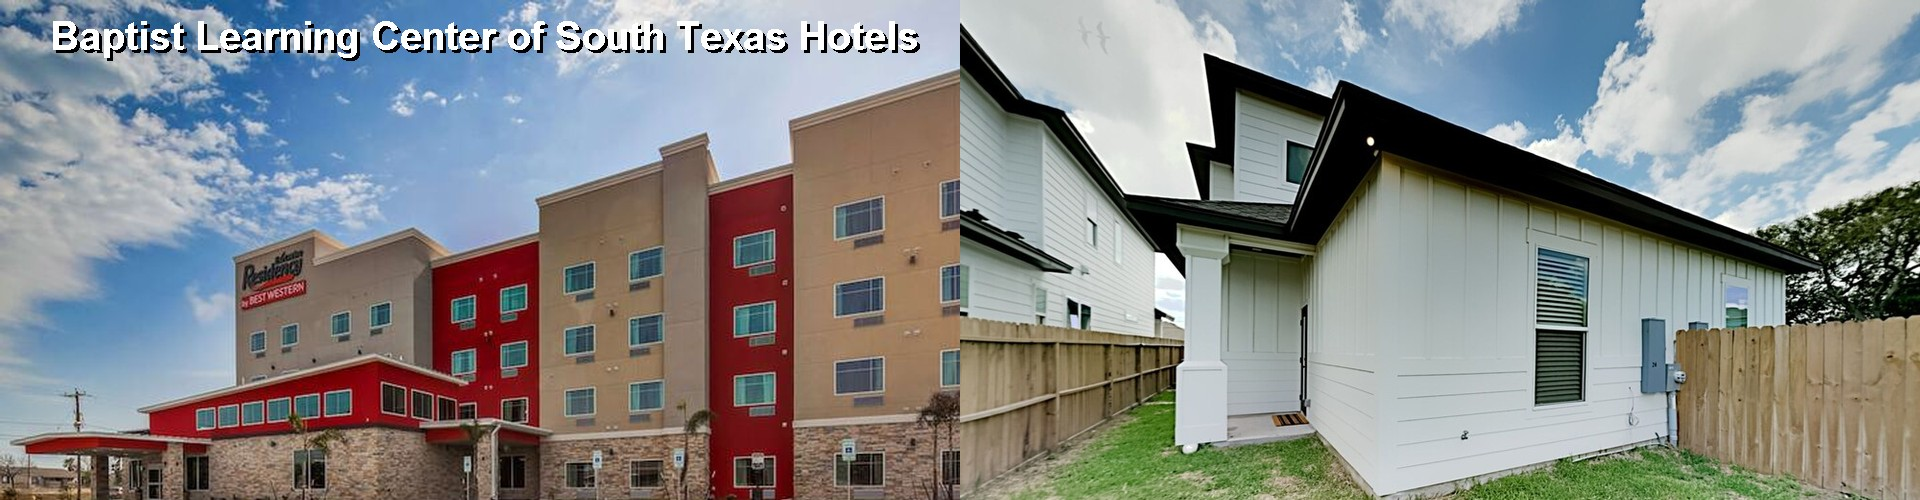 5 Best Hotels near Baptist Learning Center of South Texas